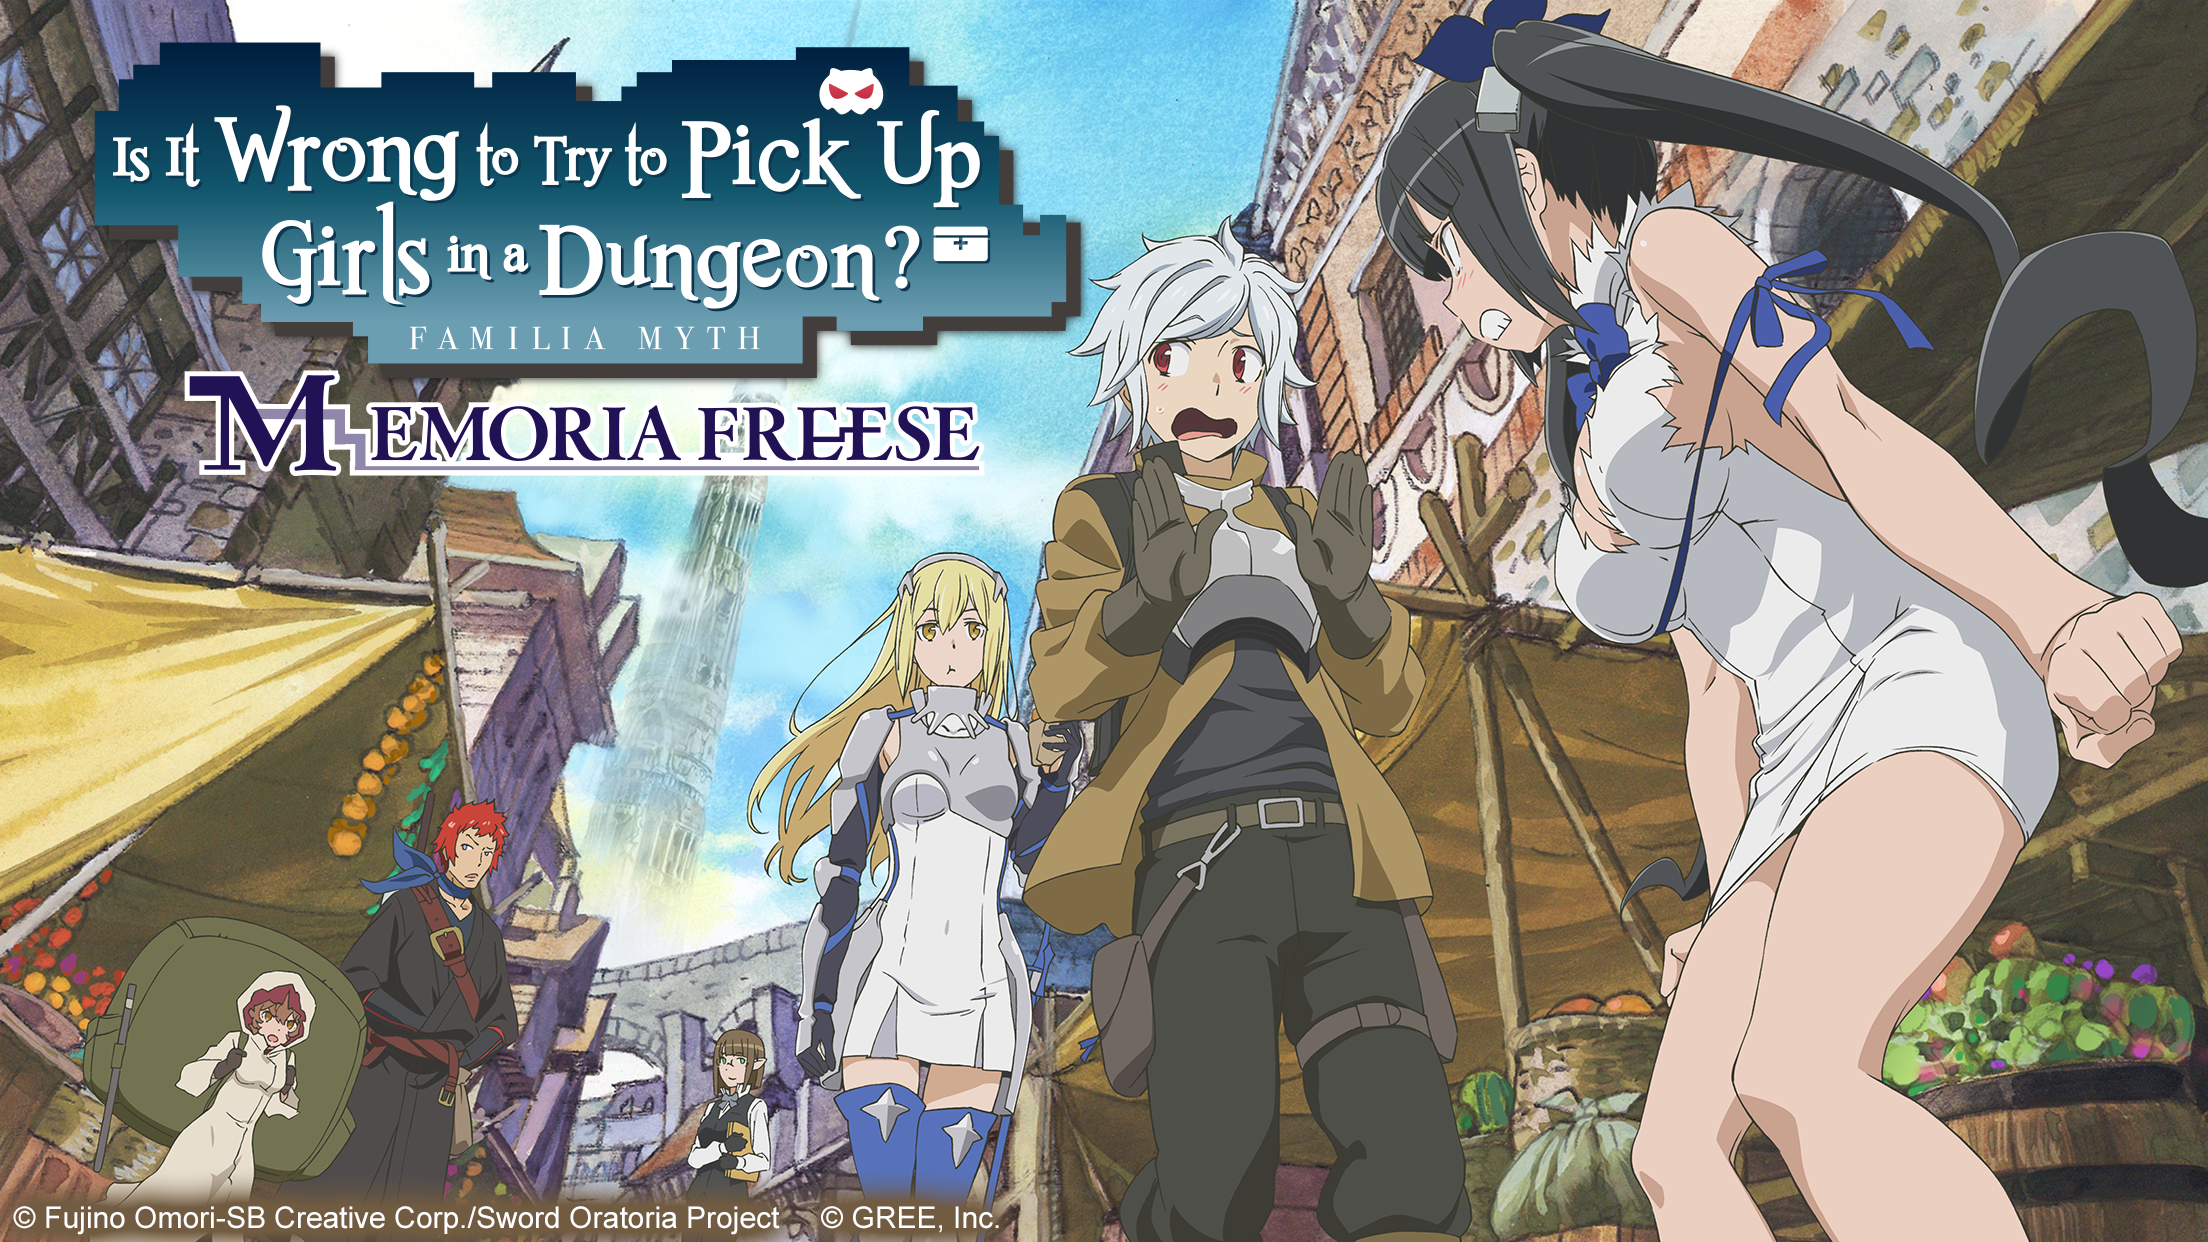 Is It Wrong to Try to Pick Up Girls in a Dungeon? Game Hits